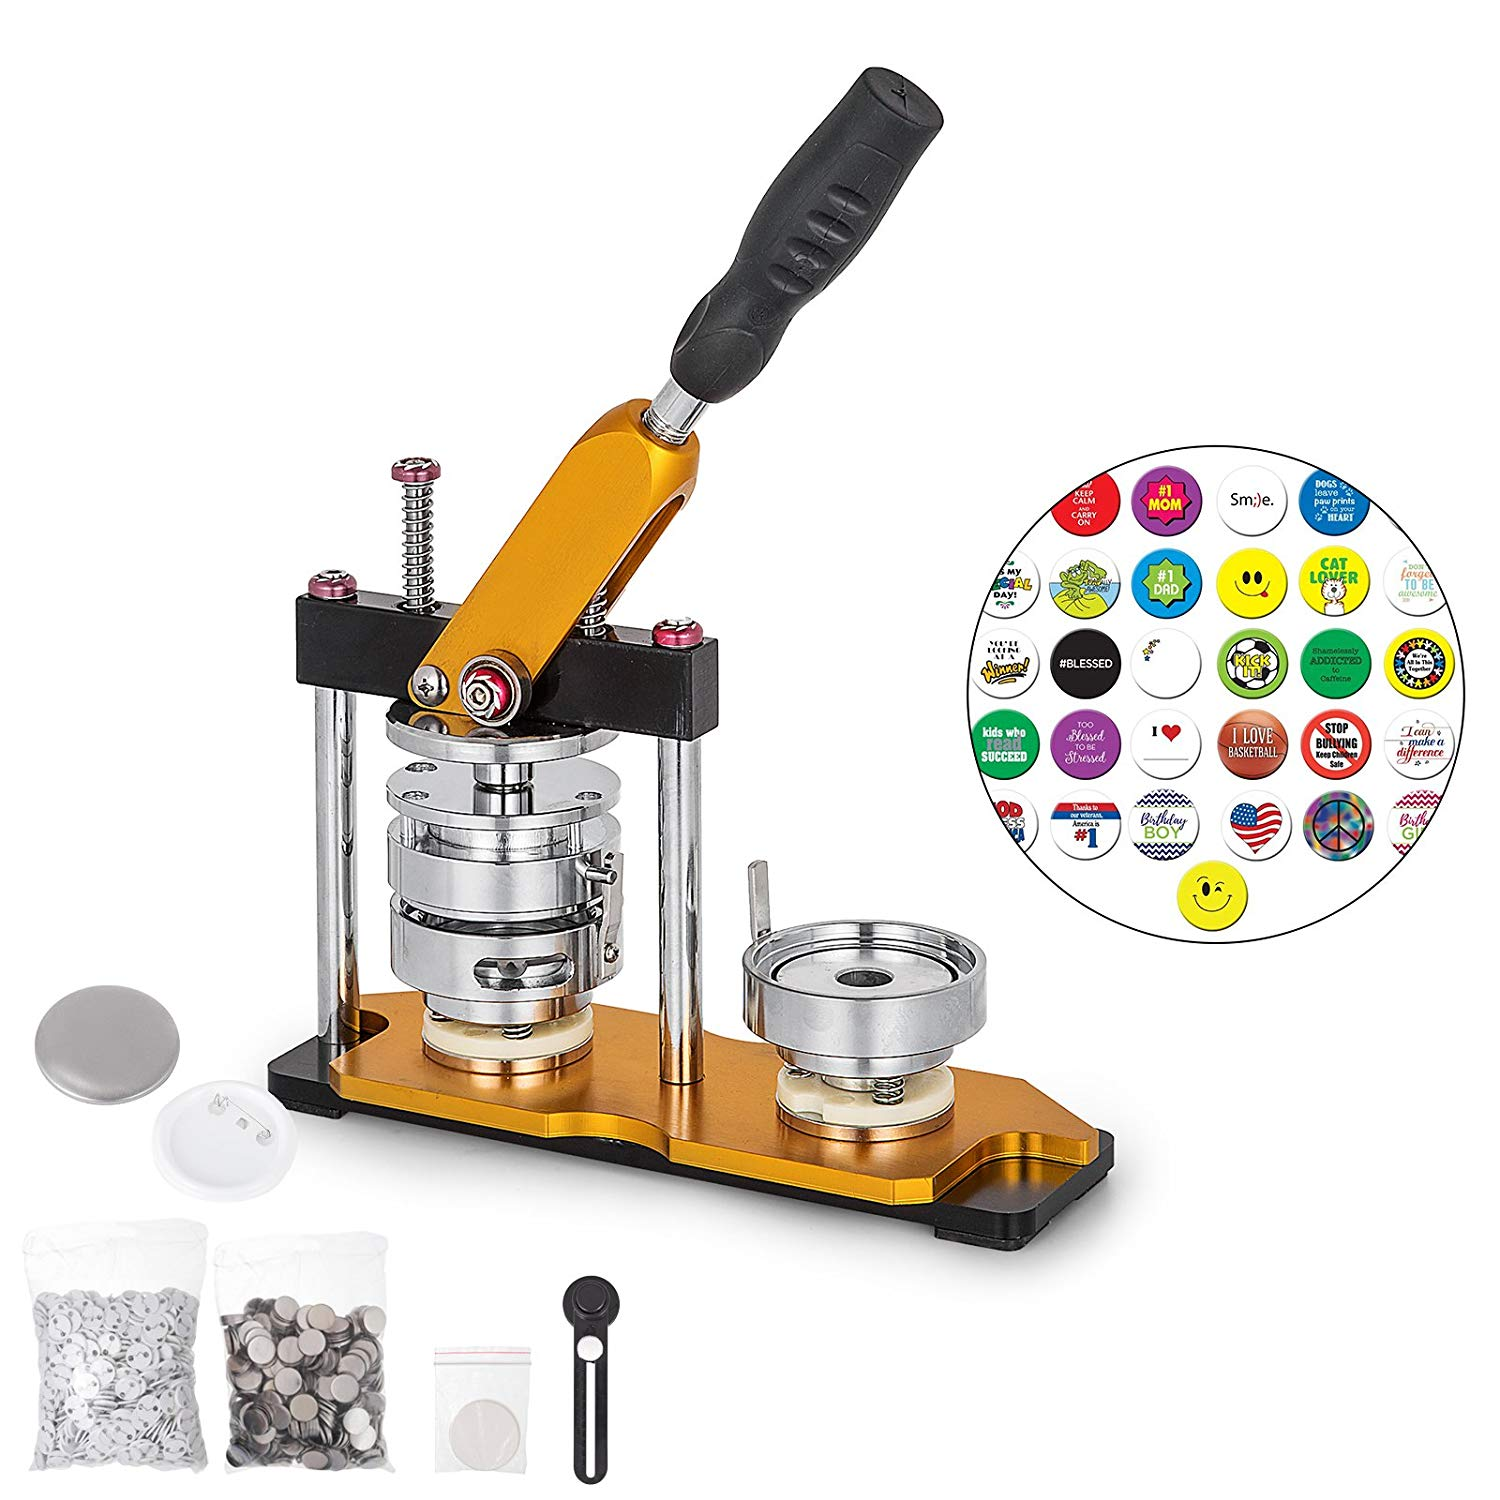 Plastice Adjustable Circle Cutter+100 Sets Metal Pinback Supply Badge Holder & Accessories Official Website New Professional N4 2 50mm Badge Button Maker Machine